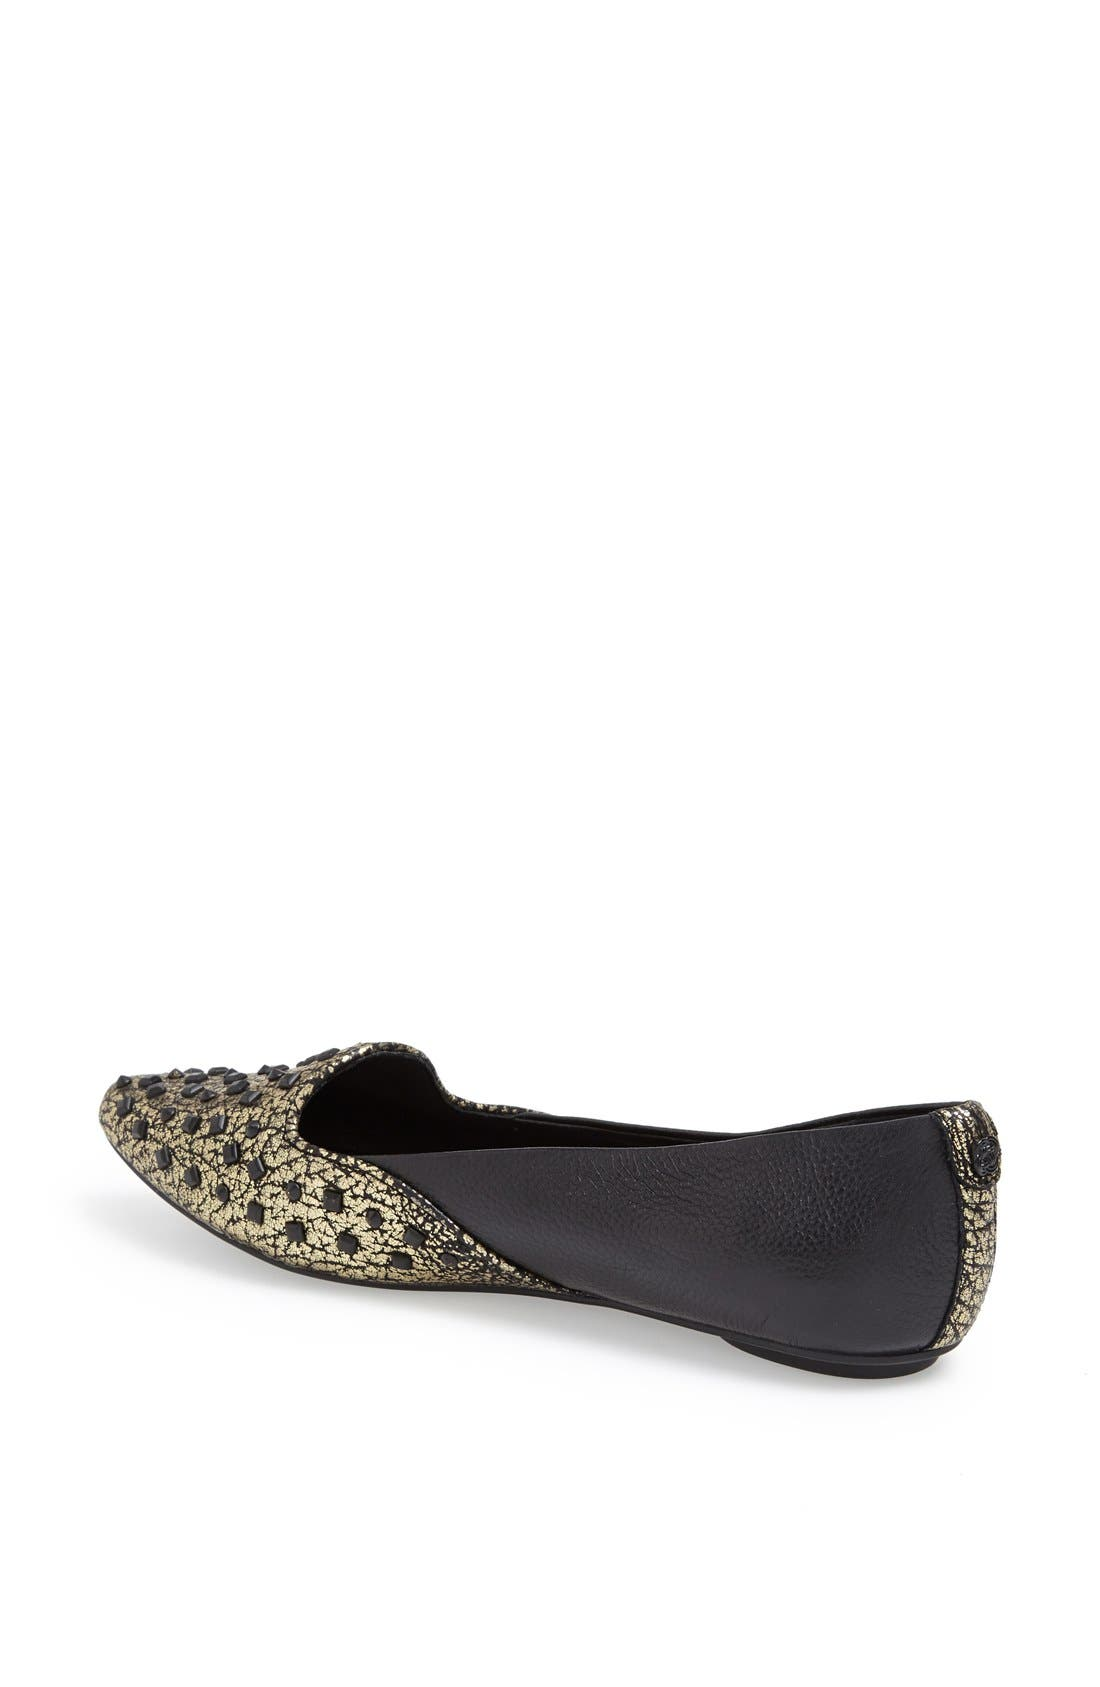 Alternate Image 2  - Elliott Lucca 'Bonita' Flat (Online Only)